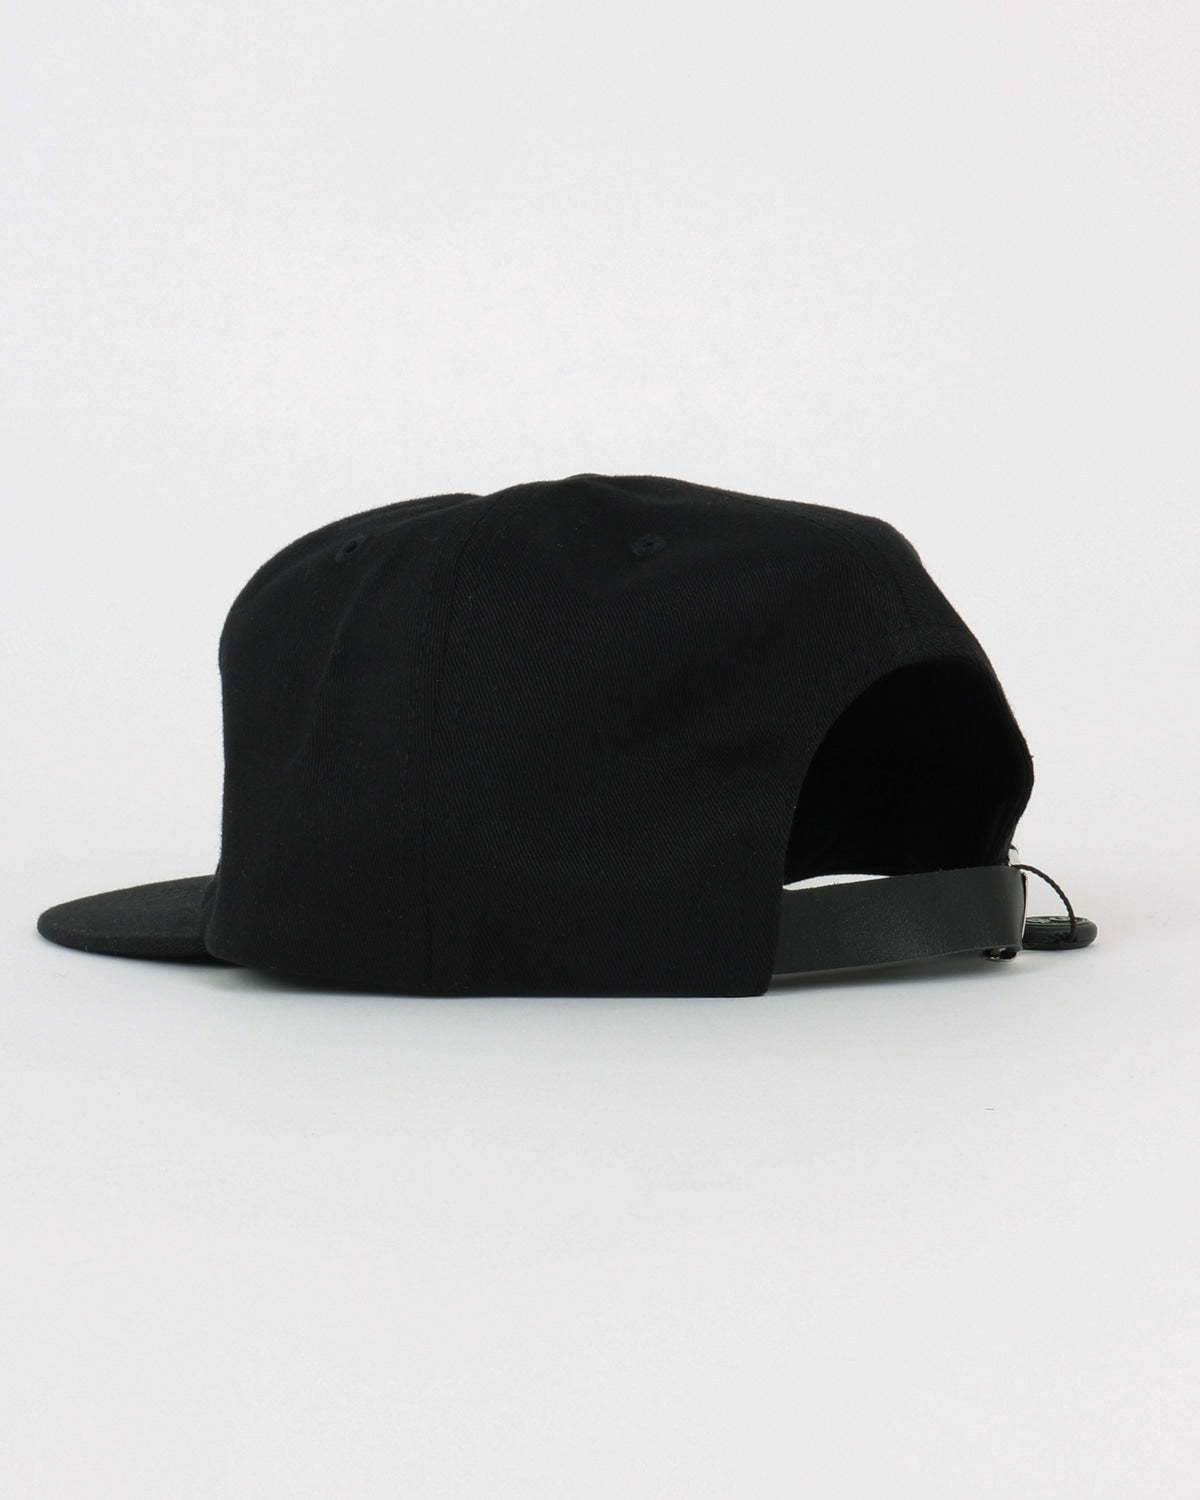 soulland_polle 6 panel cap_black embroidery_black_detail_2_3